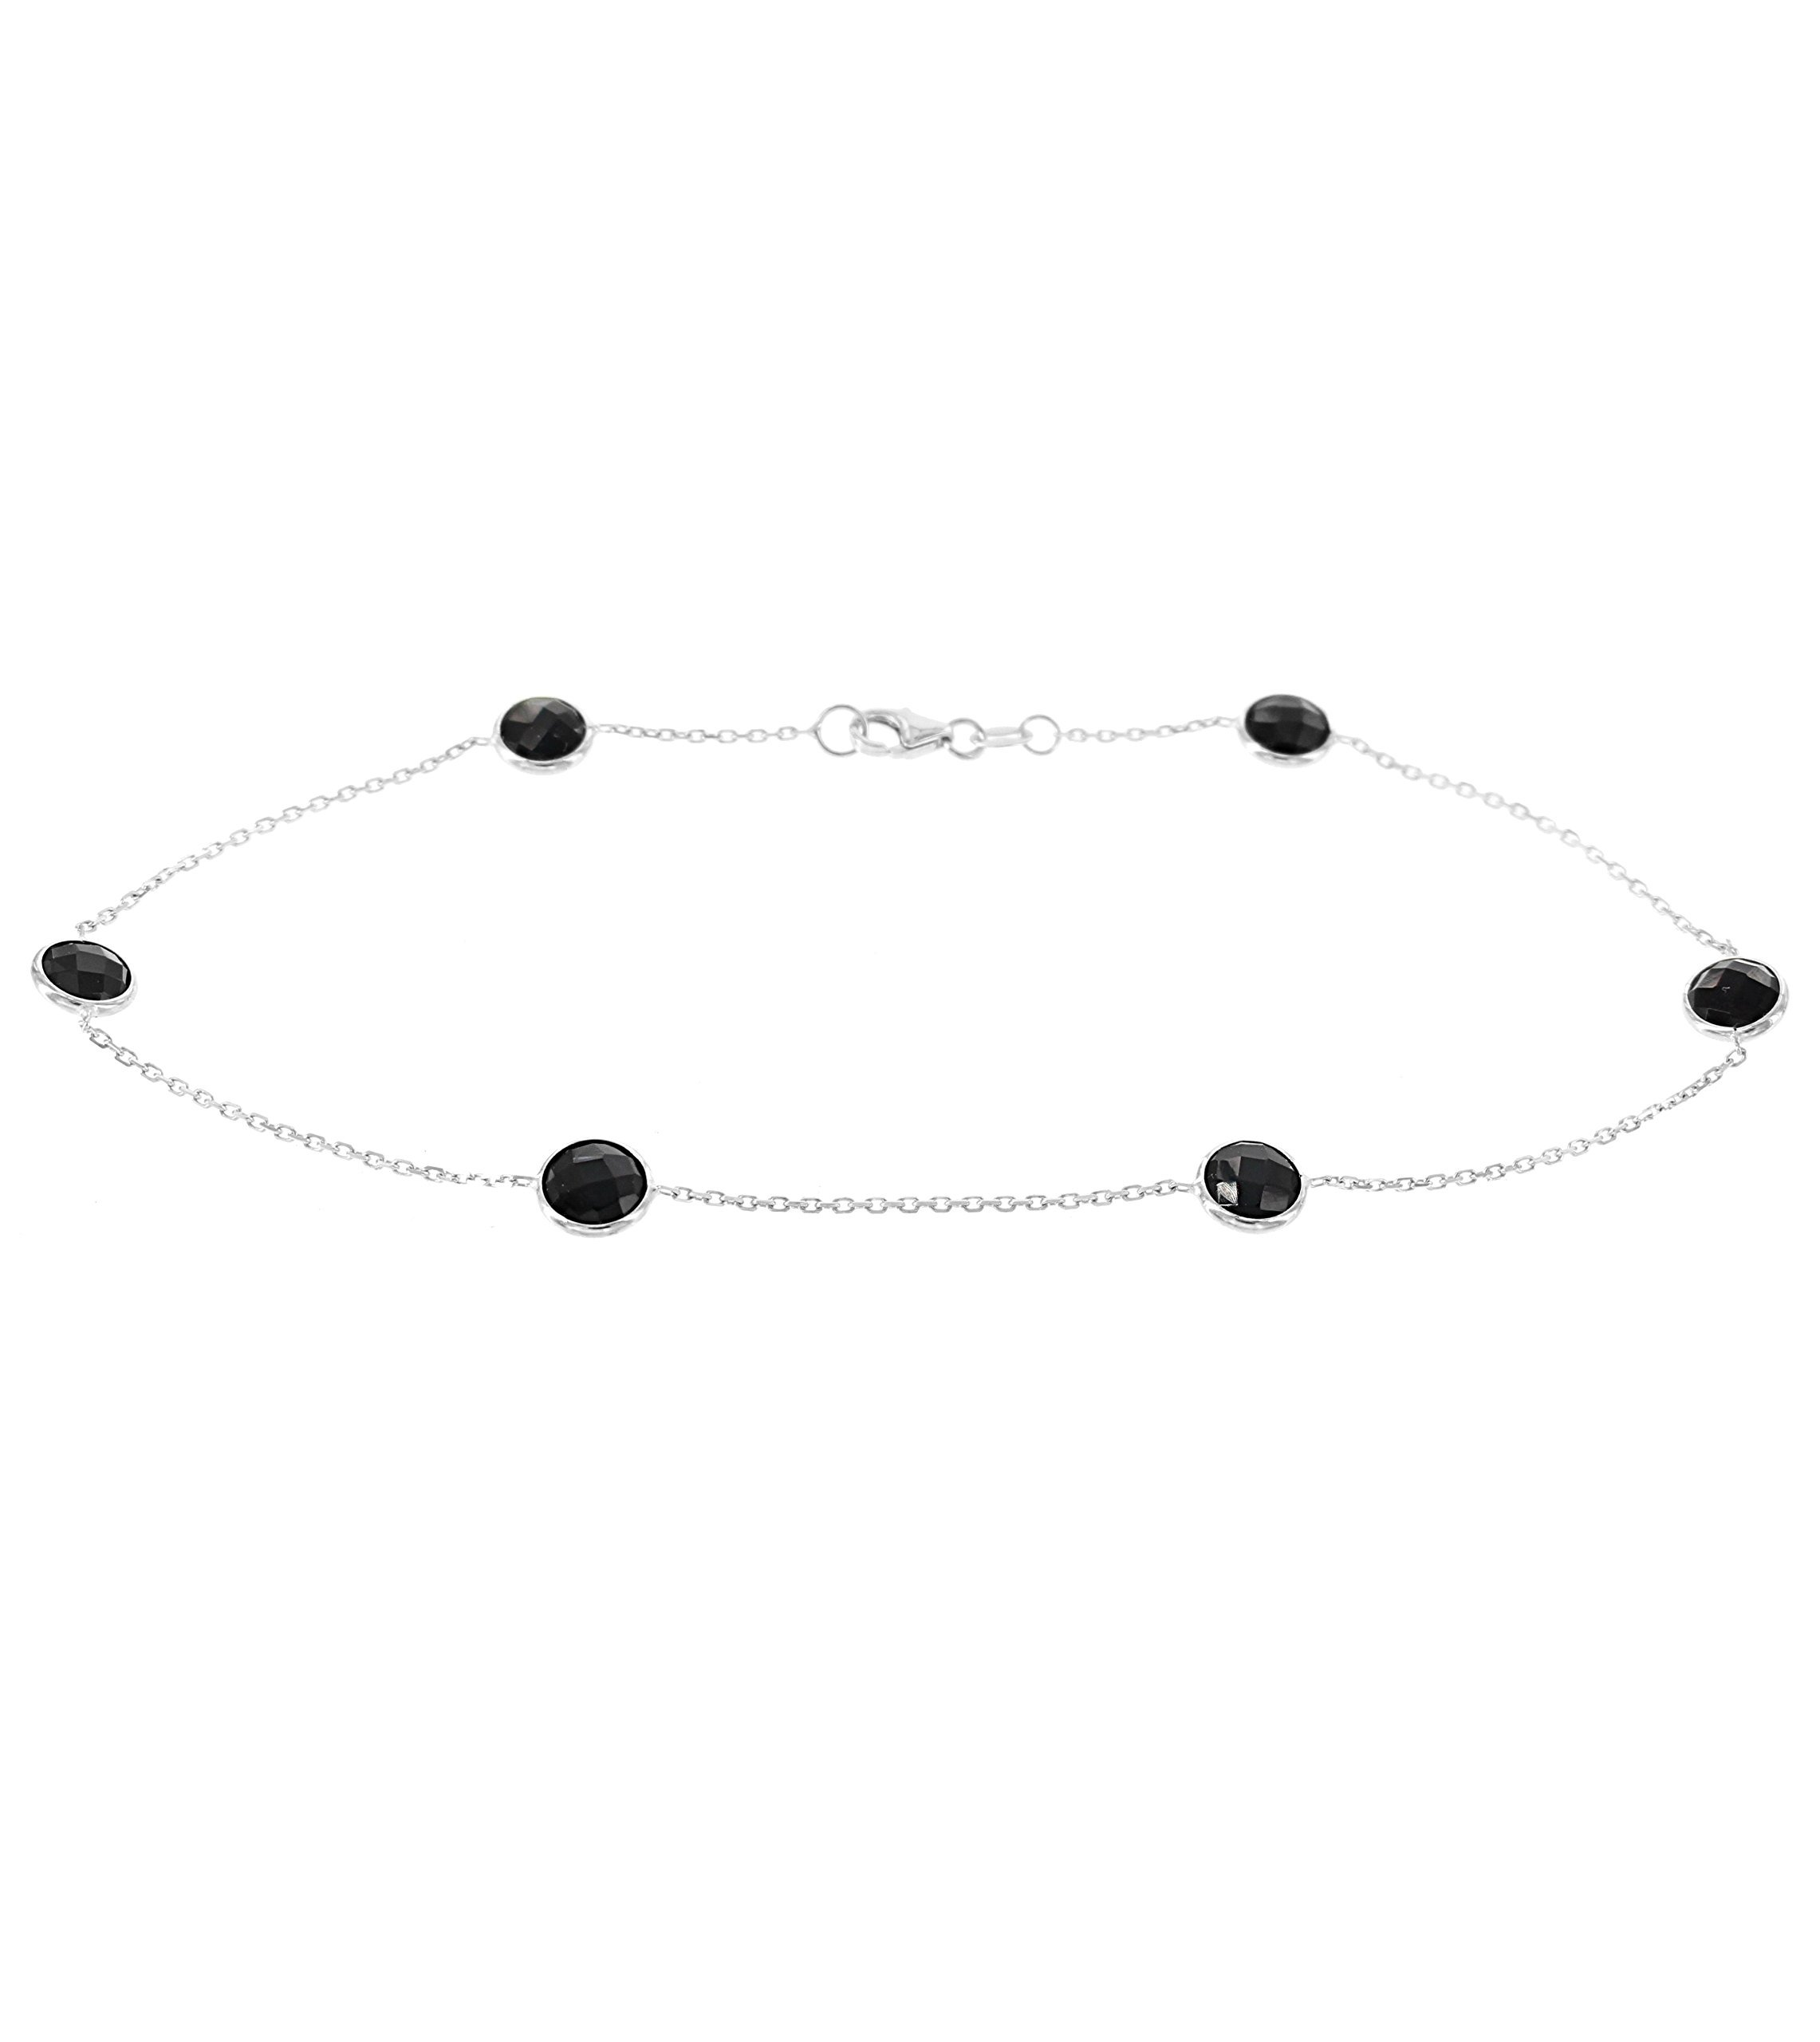 14k White Gold Ankle Bracelet With Black Onyx Gemstone Stations (9 - 11 inches)